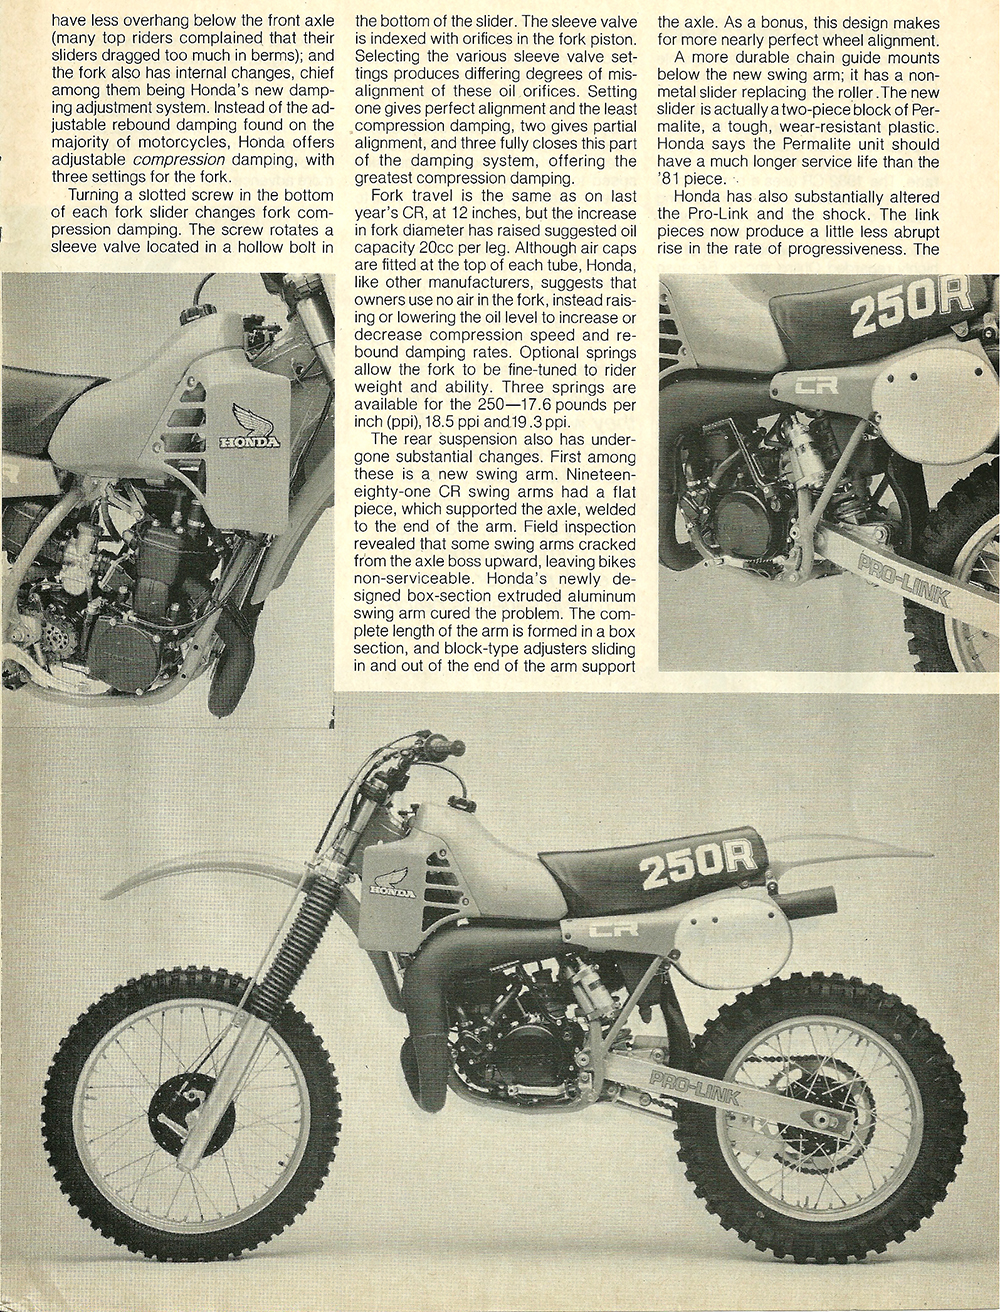 1982 Honda CR250R off road test 3.jpg